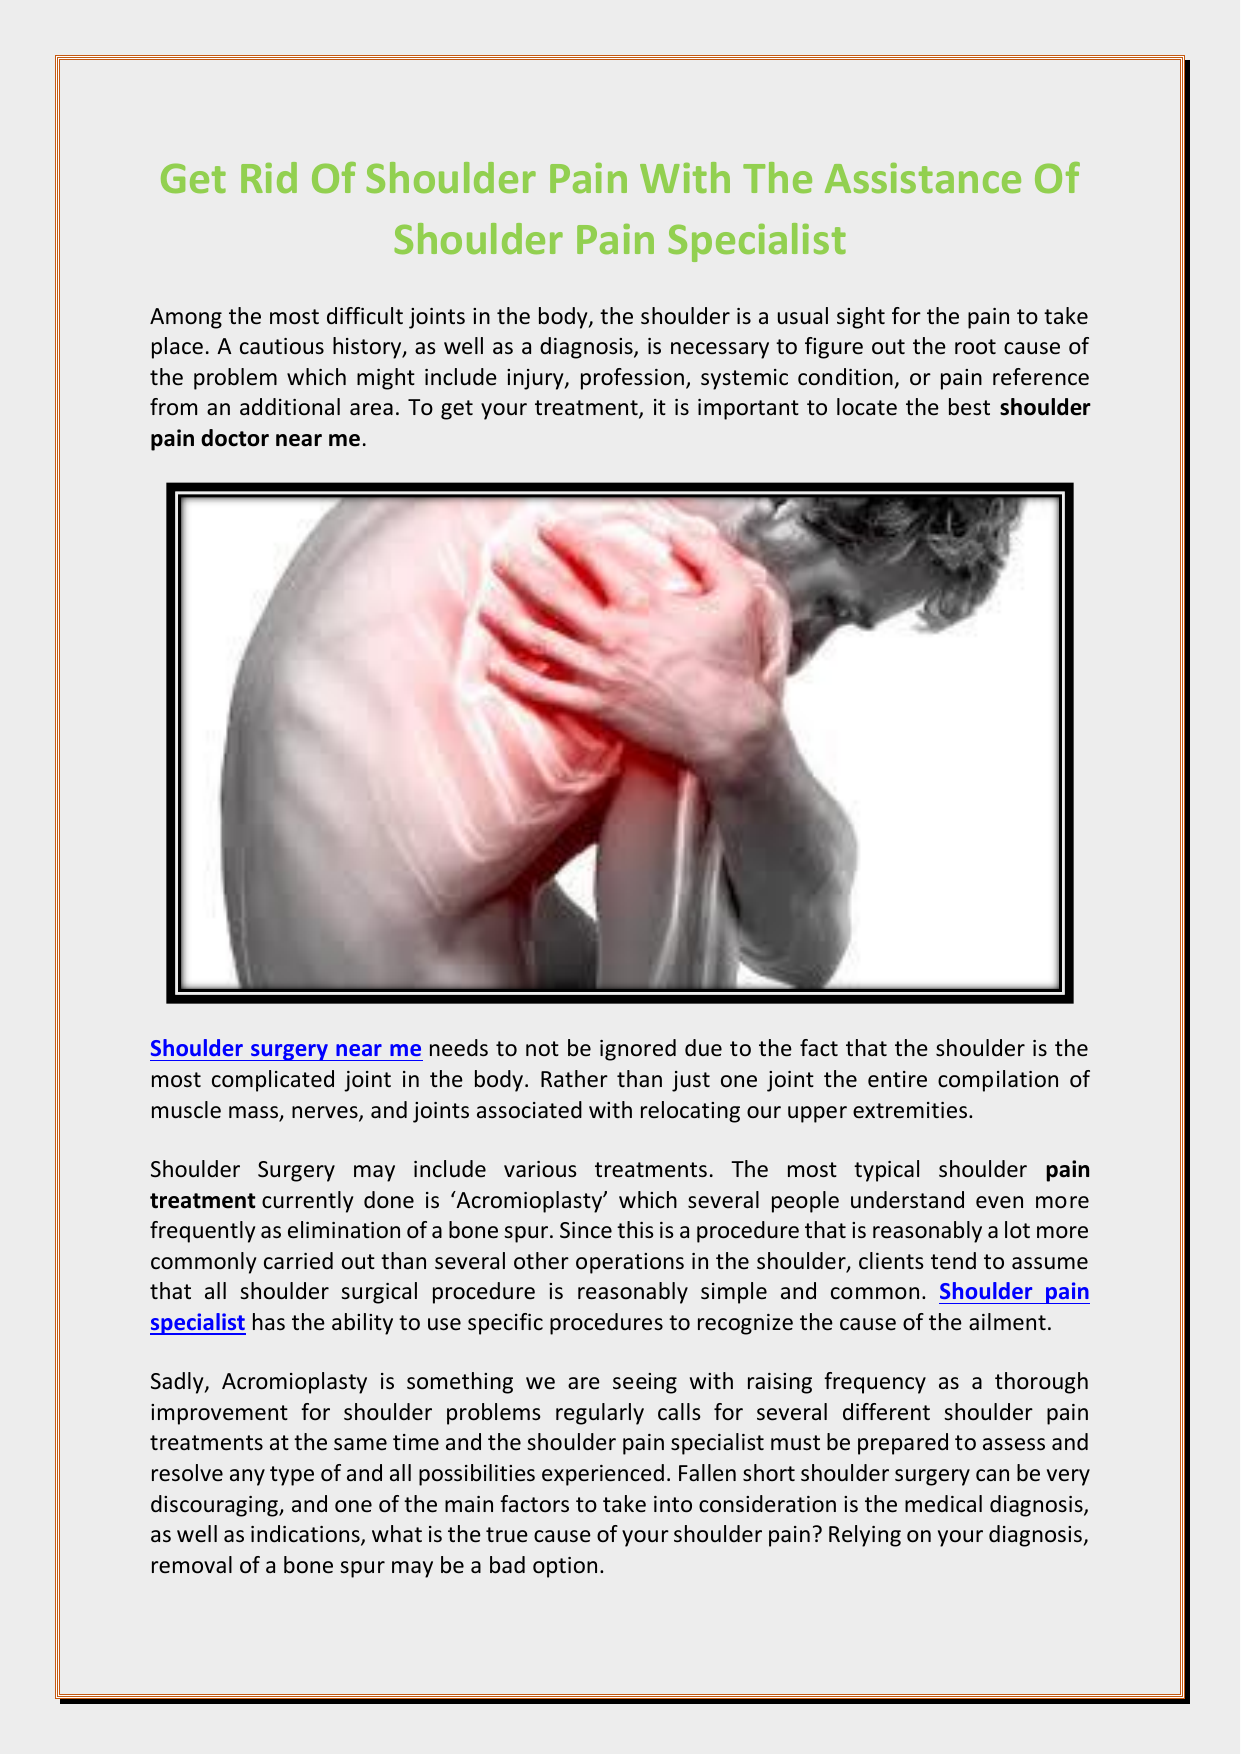 Get Rid Of Shoulder Pain With The Assistance Of Shoulder ...